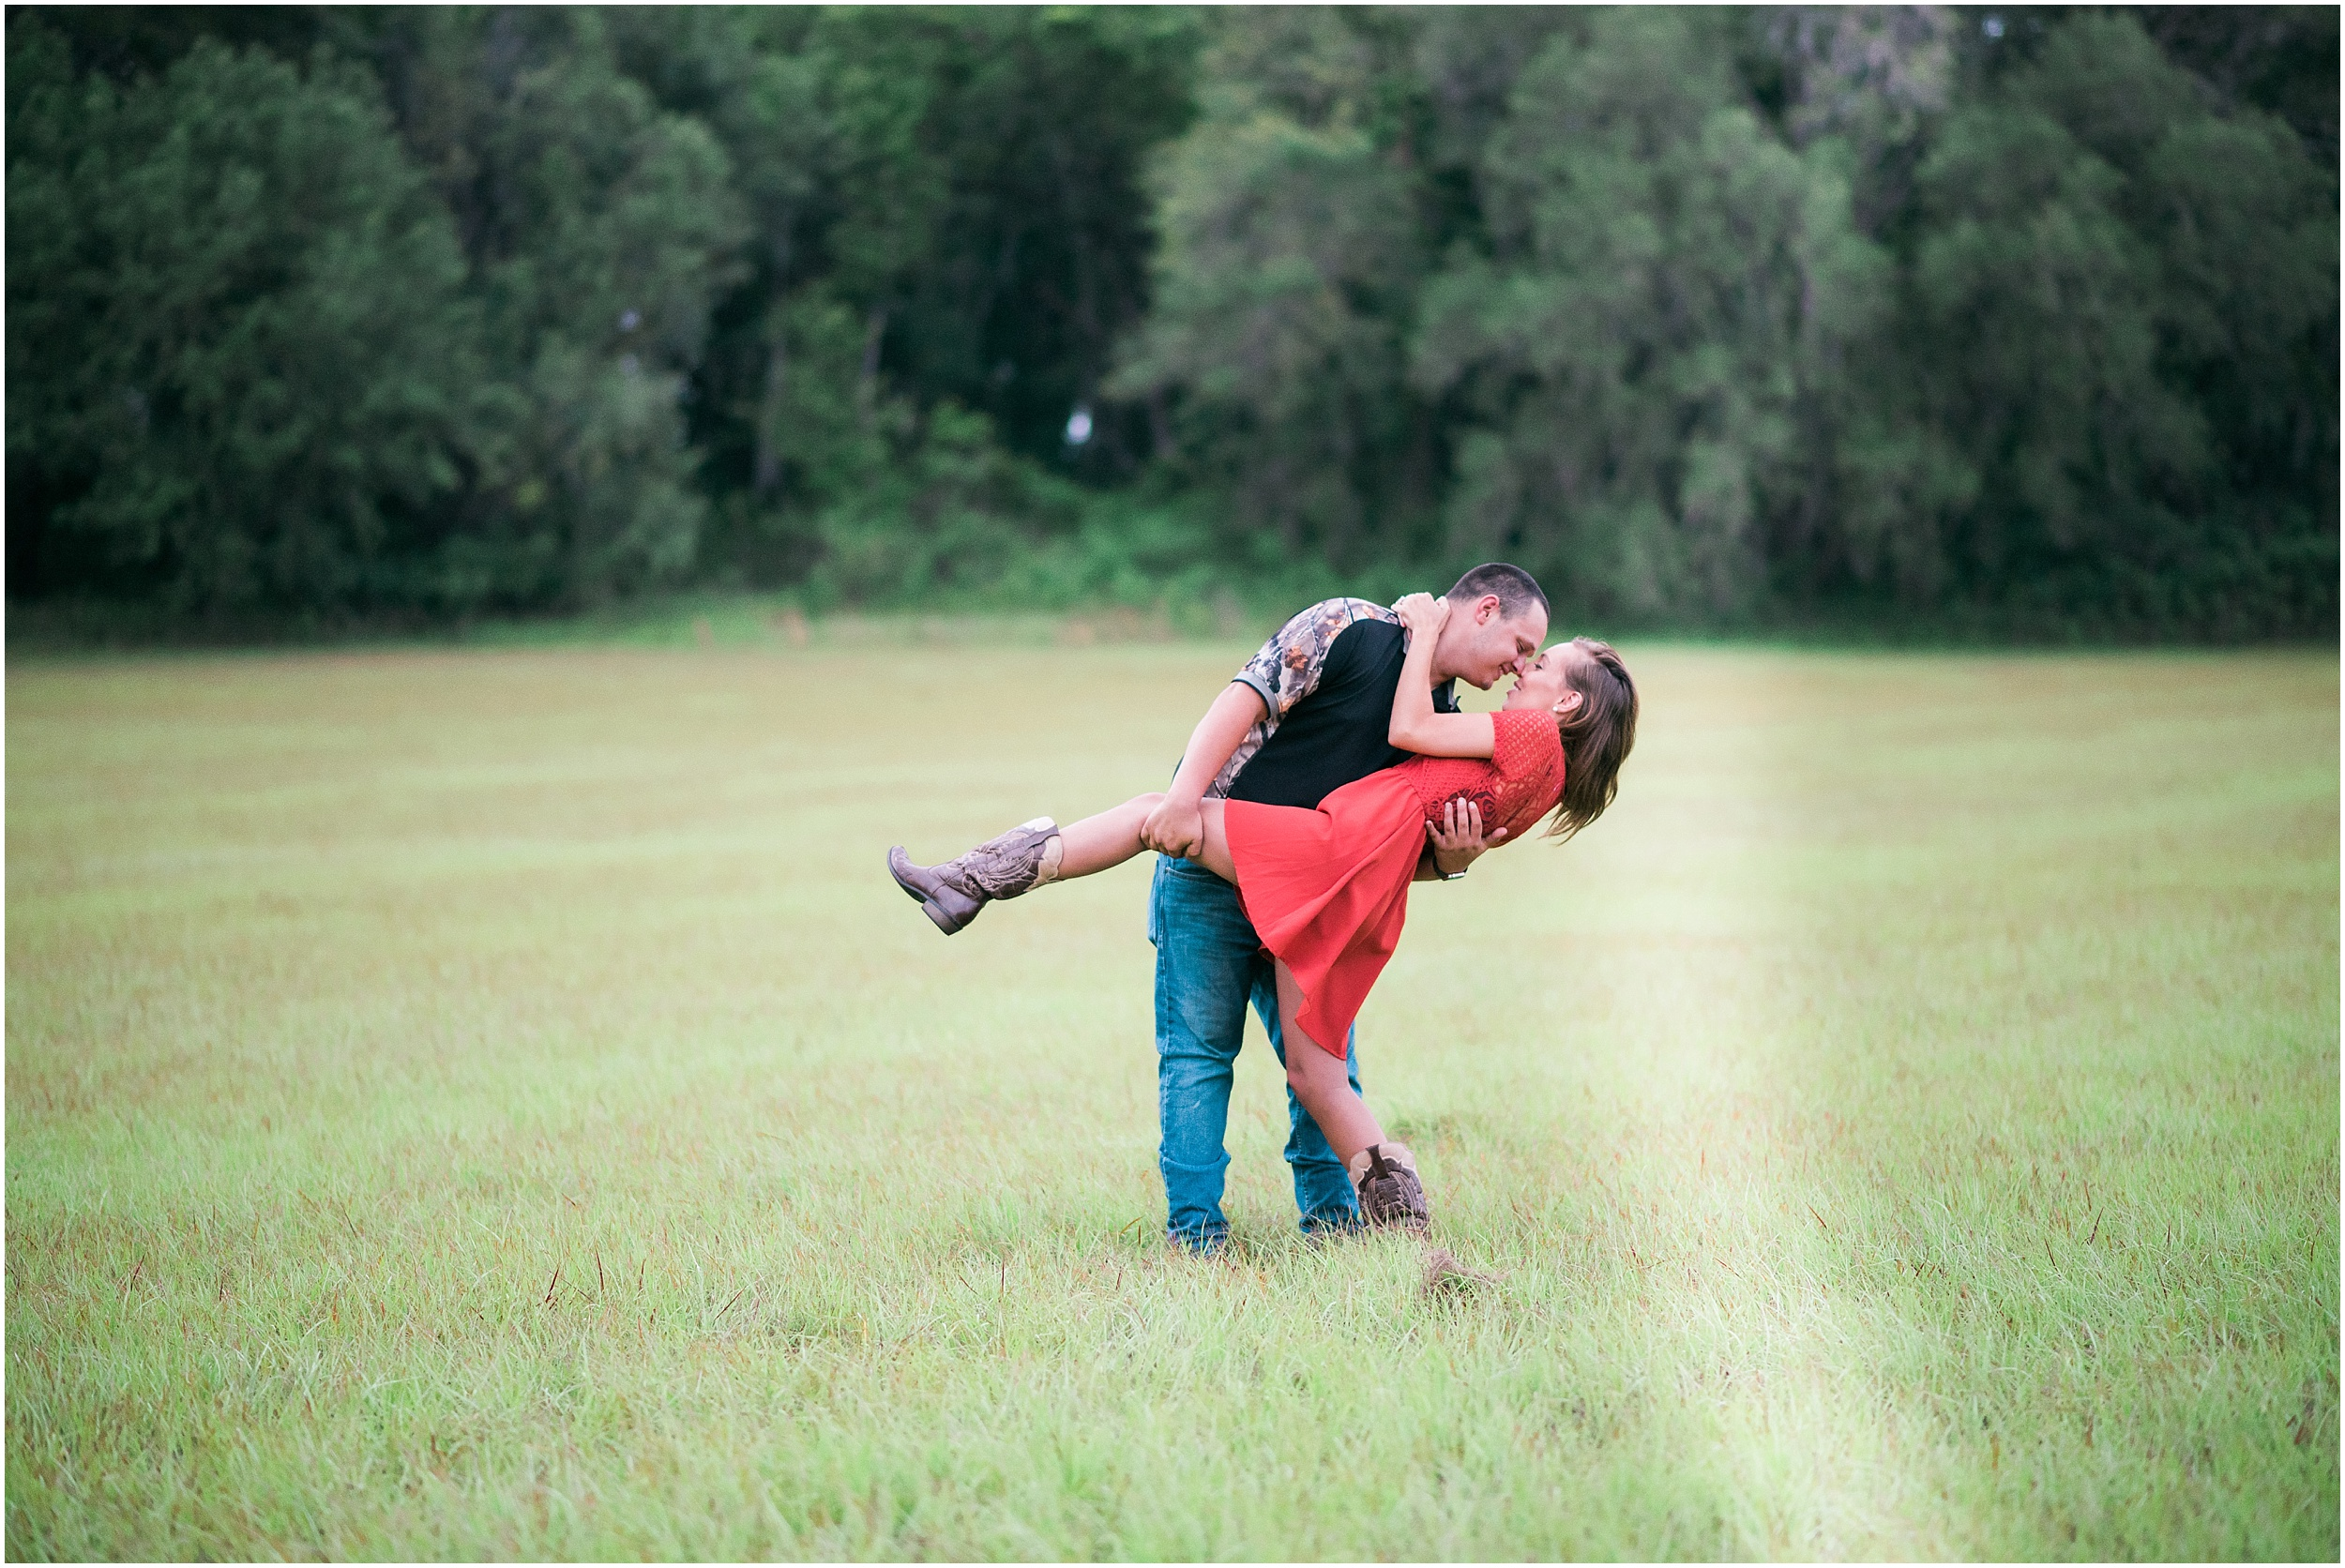 Haley & Kyle Engagement Photoshoot in J.R Alford Greenway, Tallahassee FL_0019.jpg